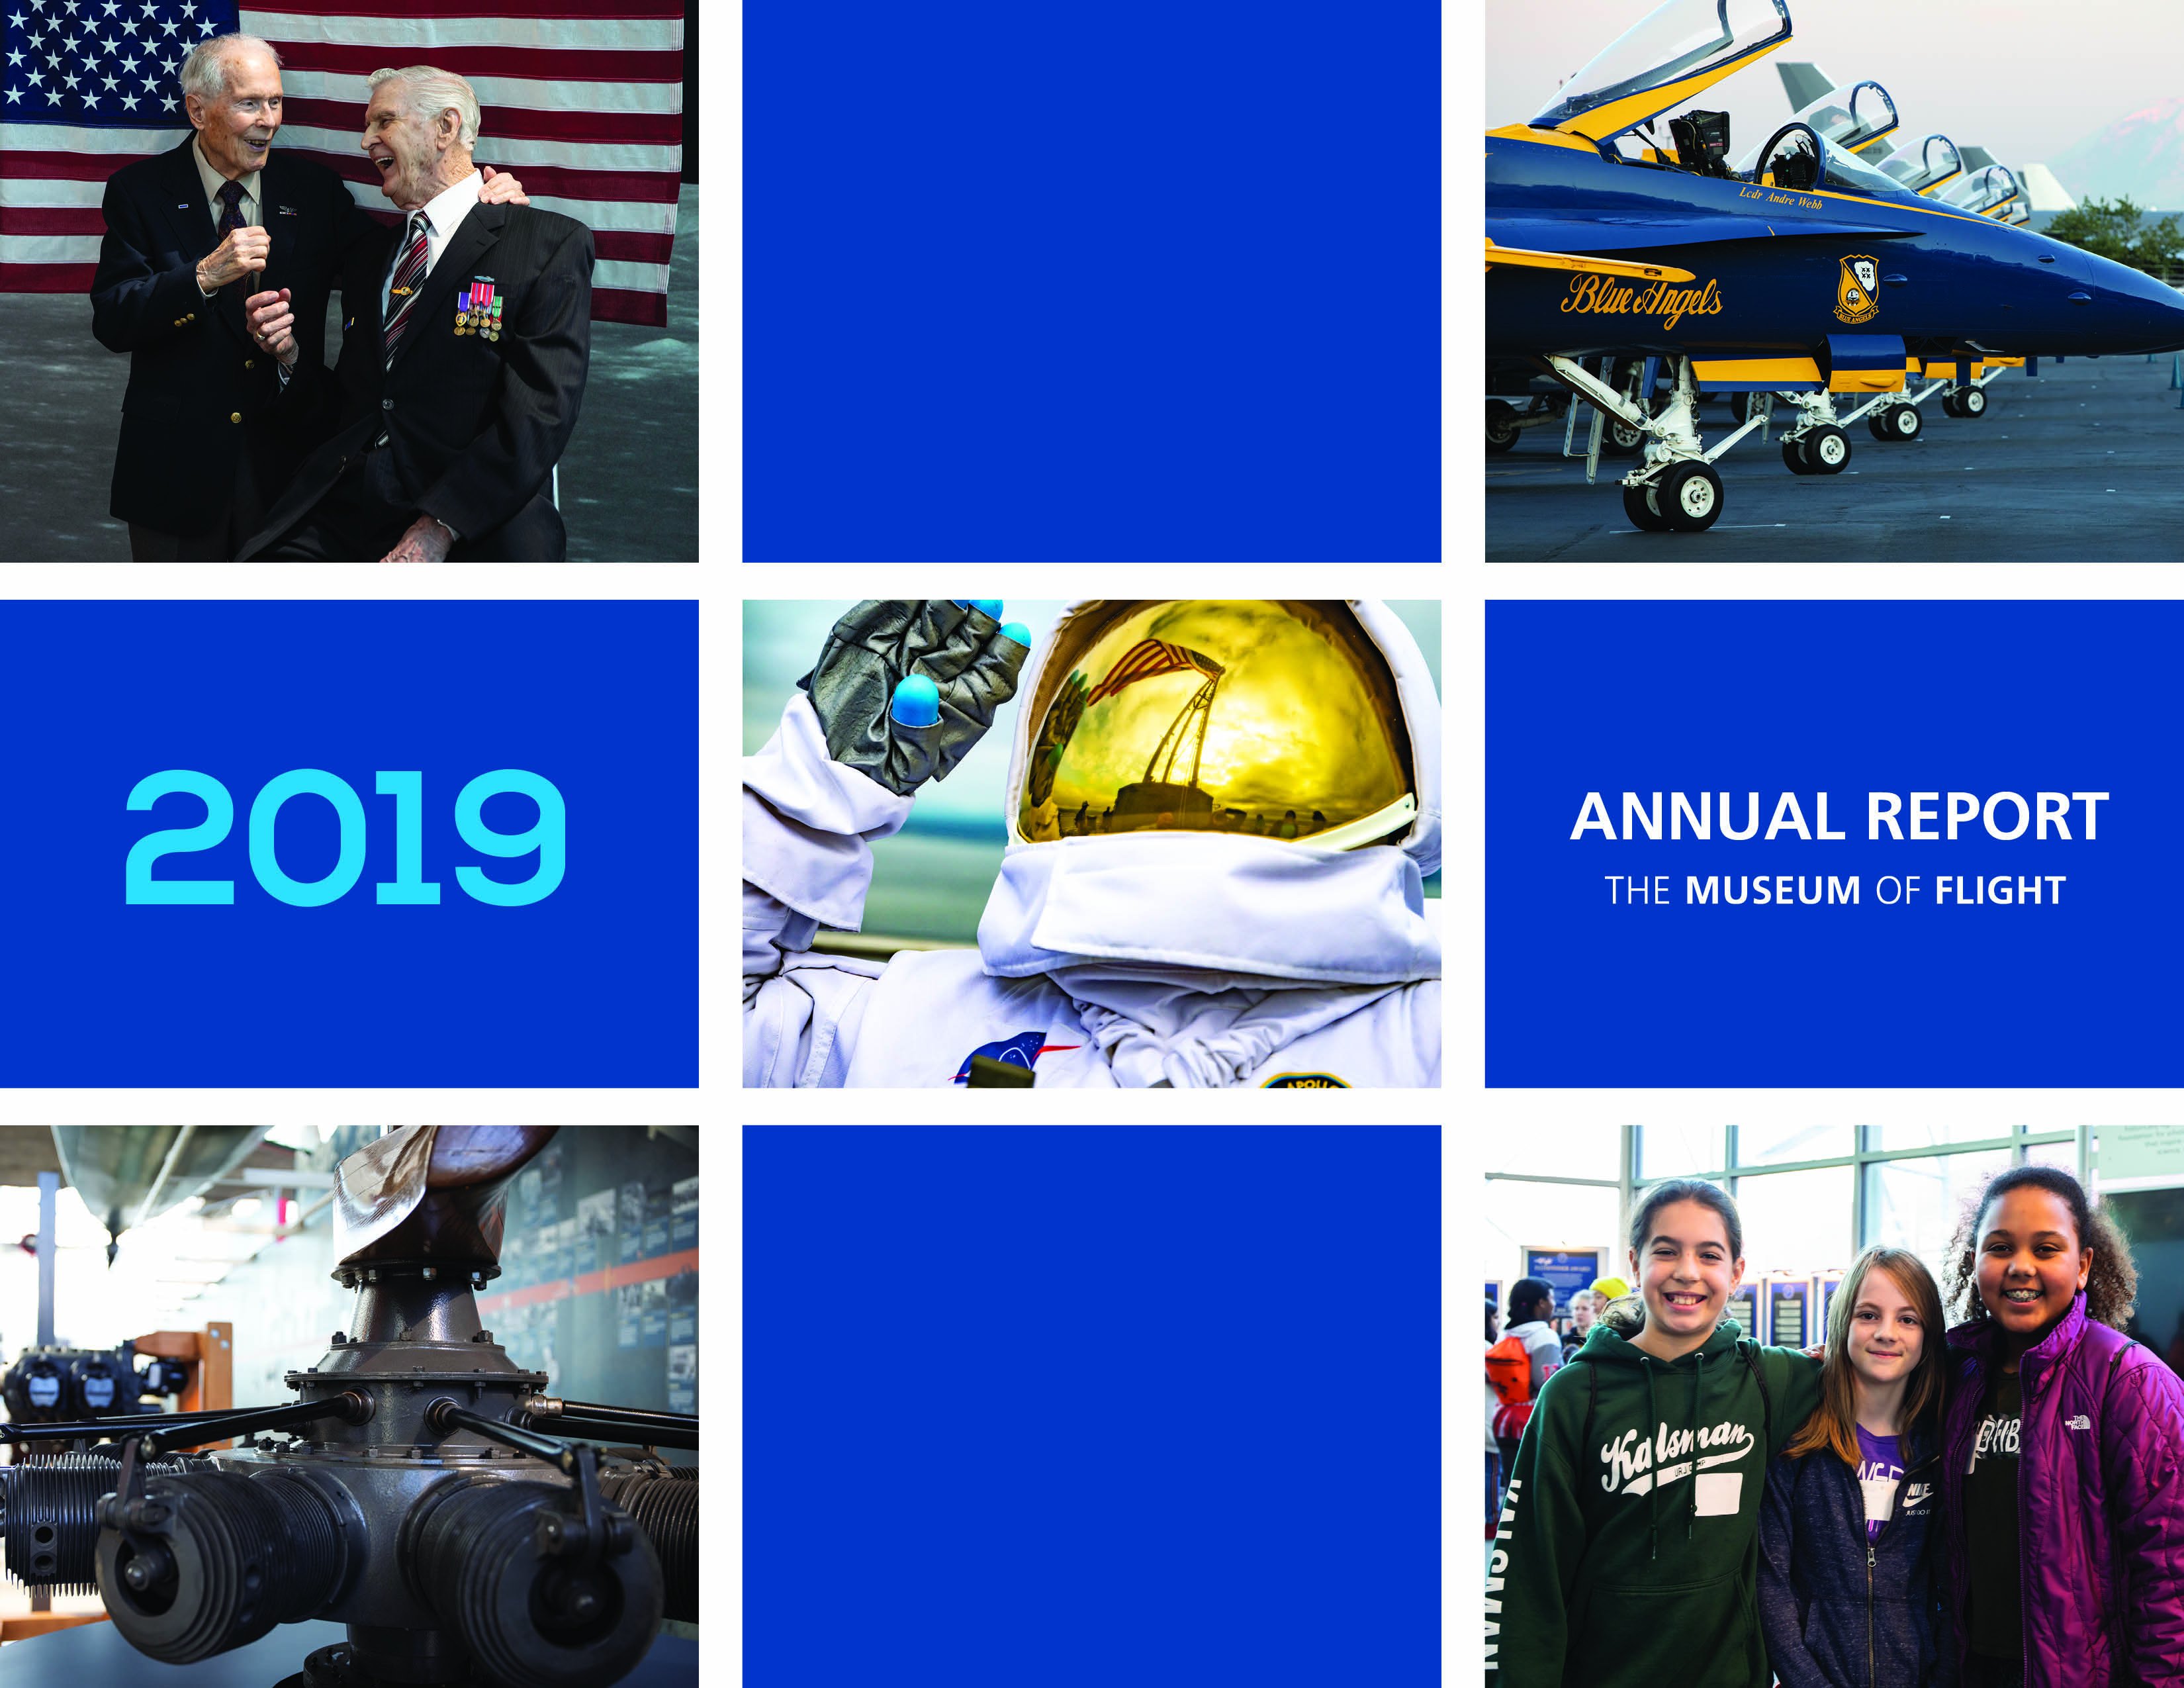 The Museum of Flight's 2019 Annual Report